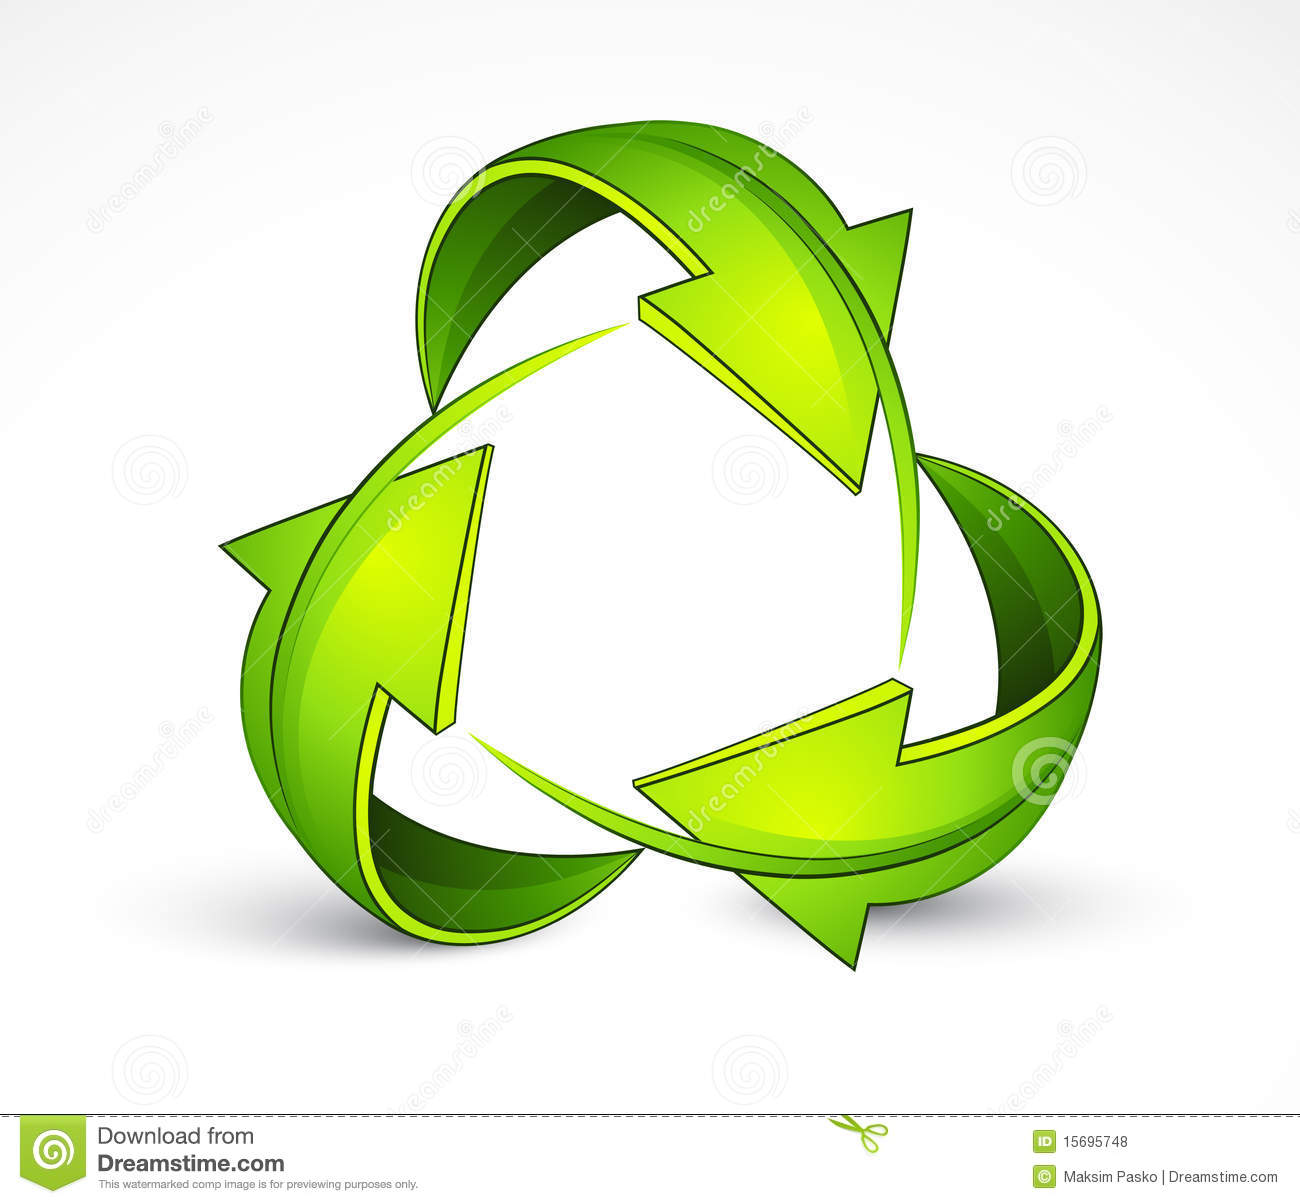 Illustration of green directional arrows in shape of recycling symbol ...